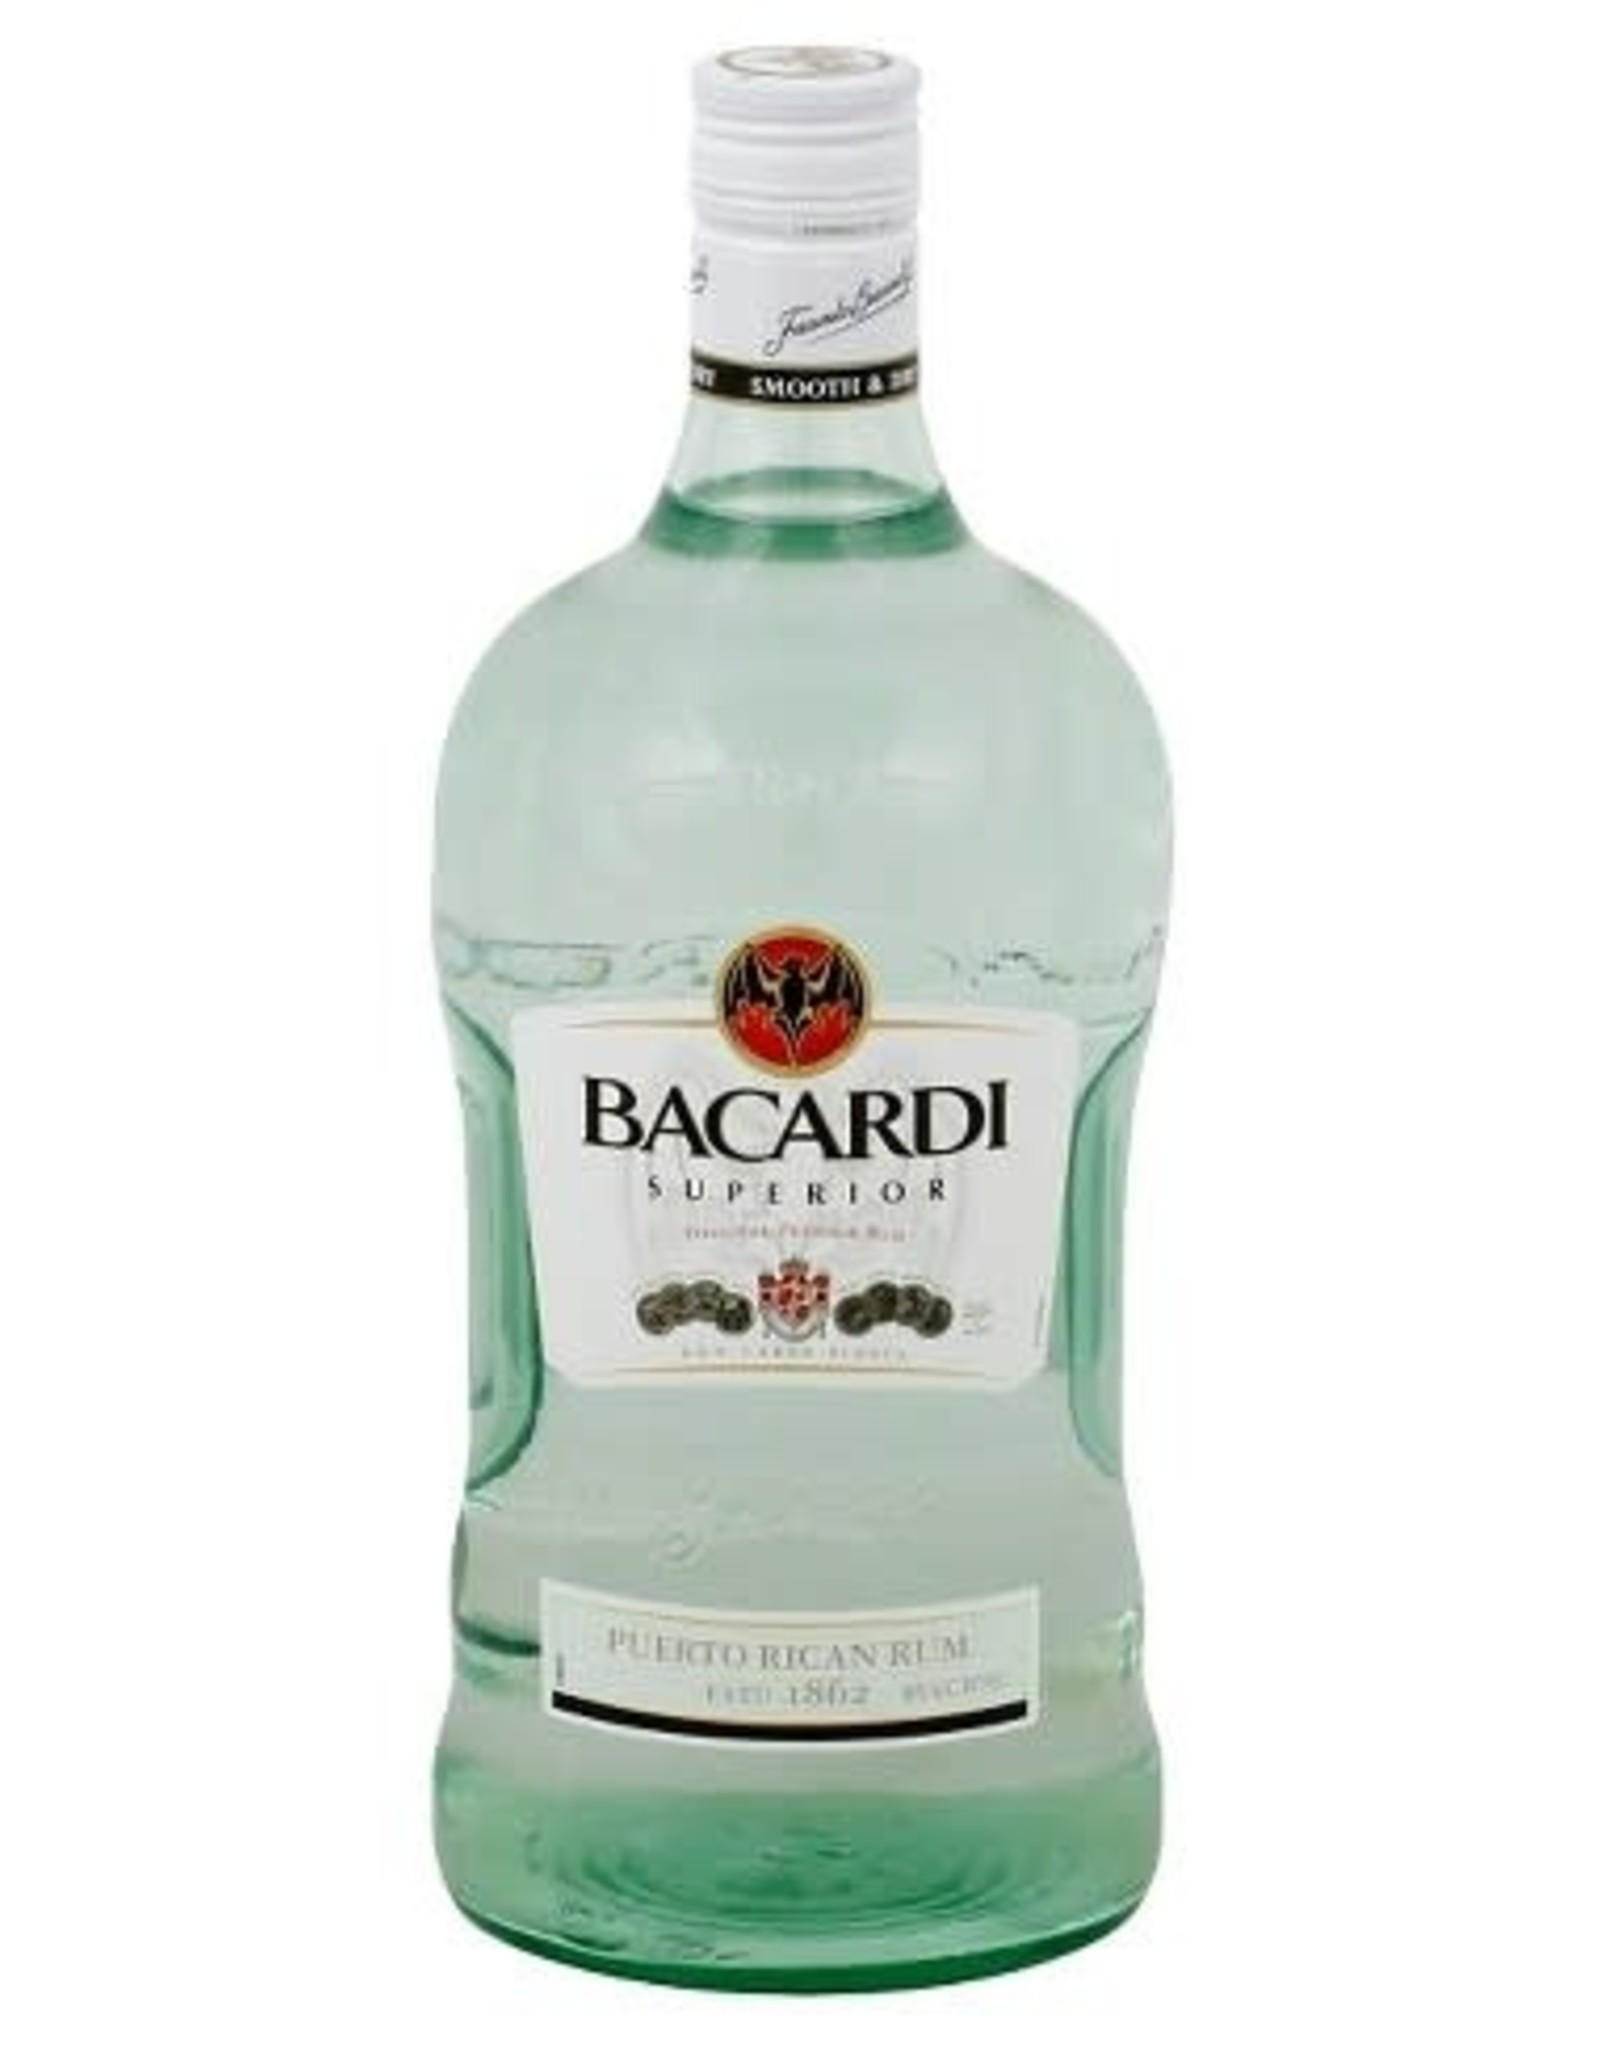 Bacardi Bacardi 80 Rum Superior Light 1.75L